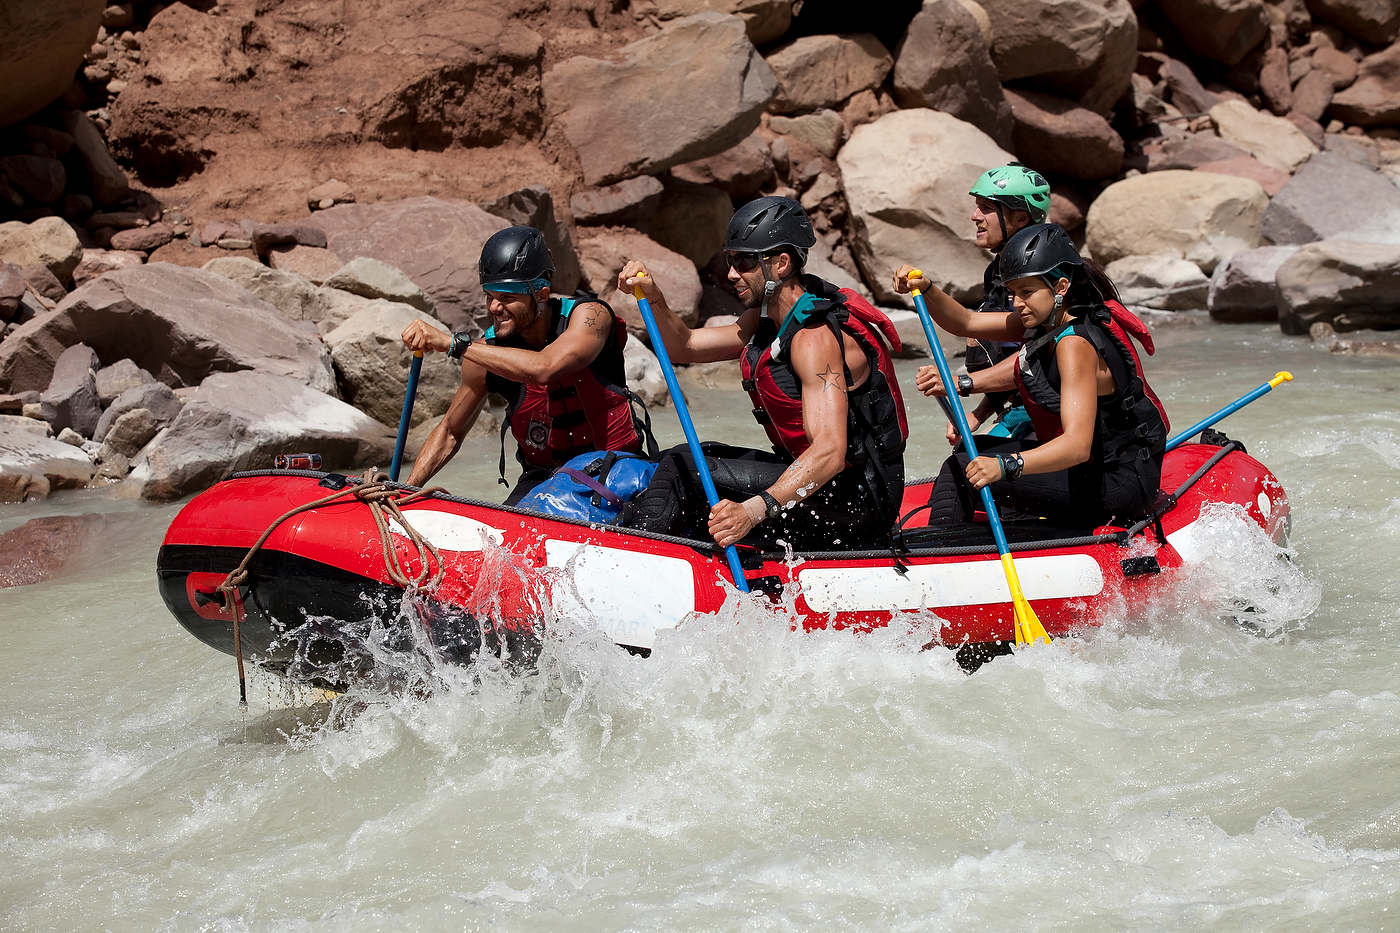 Team Fab 3 on the rafting stage.